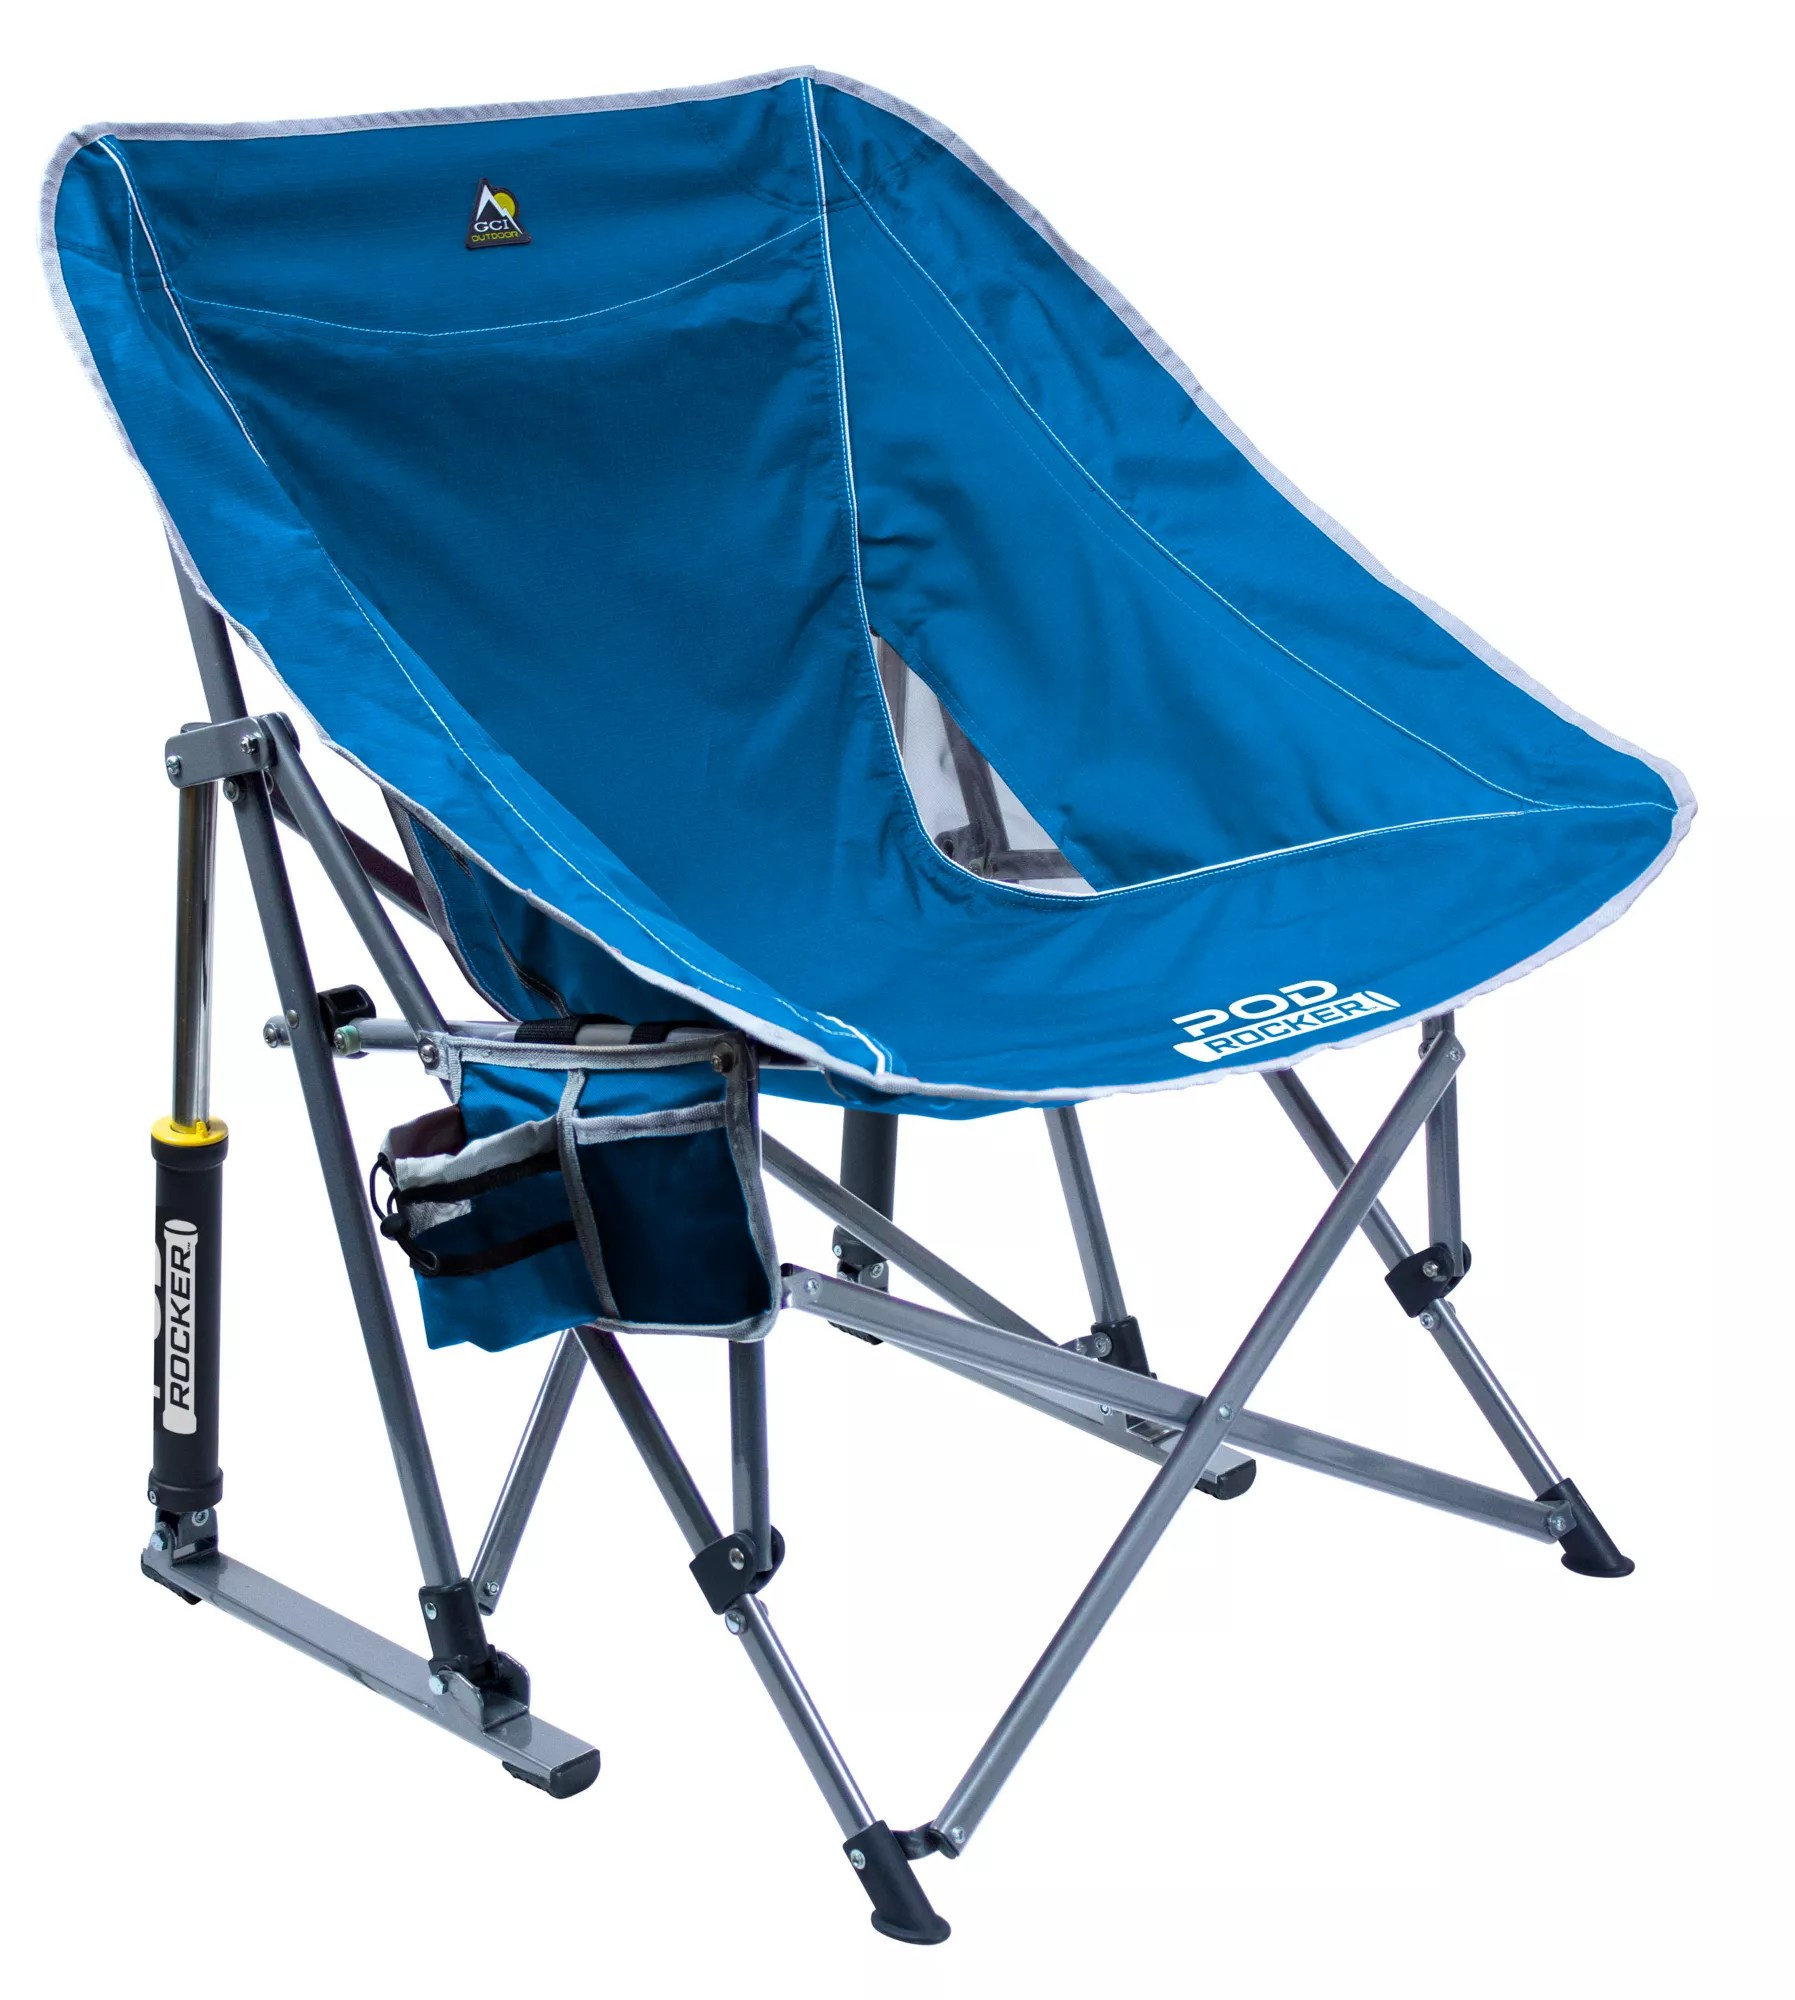 camping chairs with canopy fabric for folding best price guarantee at dick s product image gci outdoor pod rocker chair